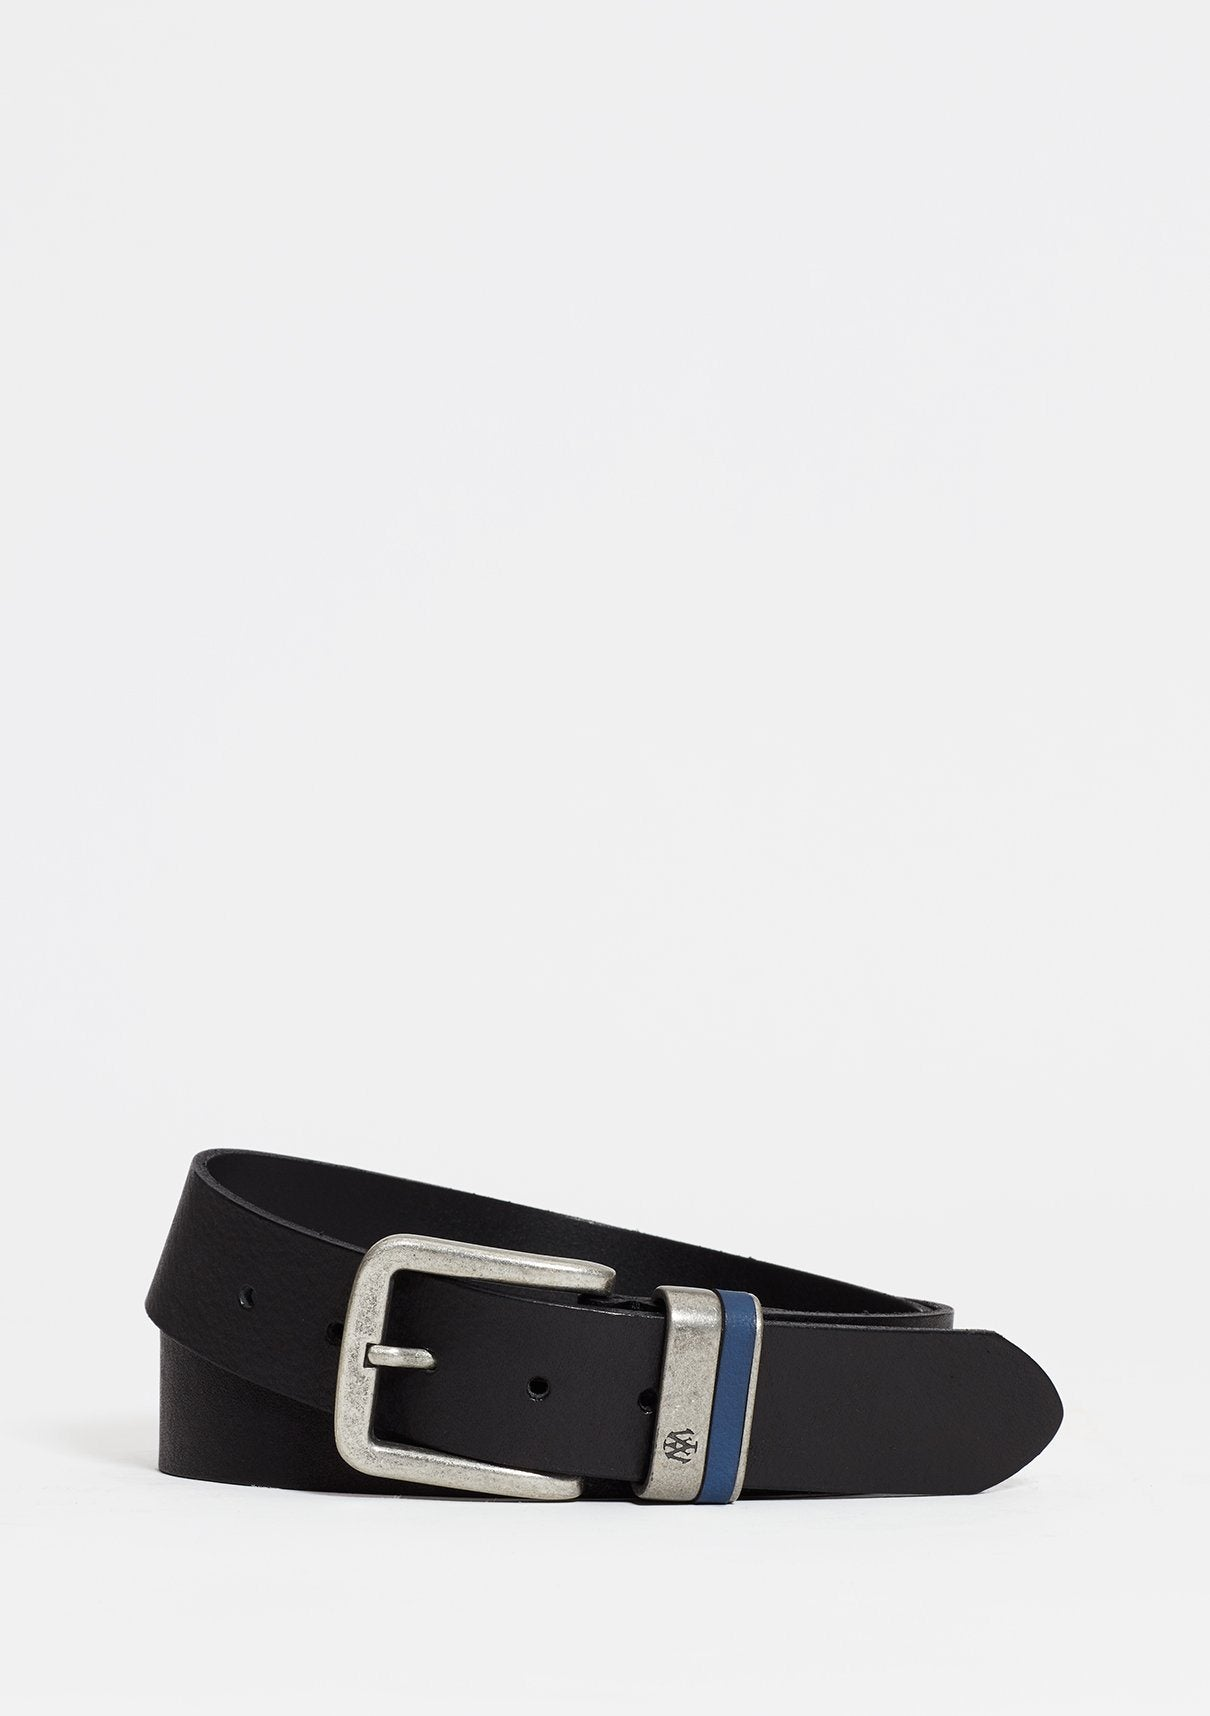 Black Leather Belt with Silver Buckle Image 7